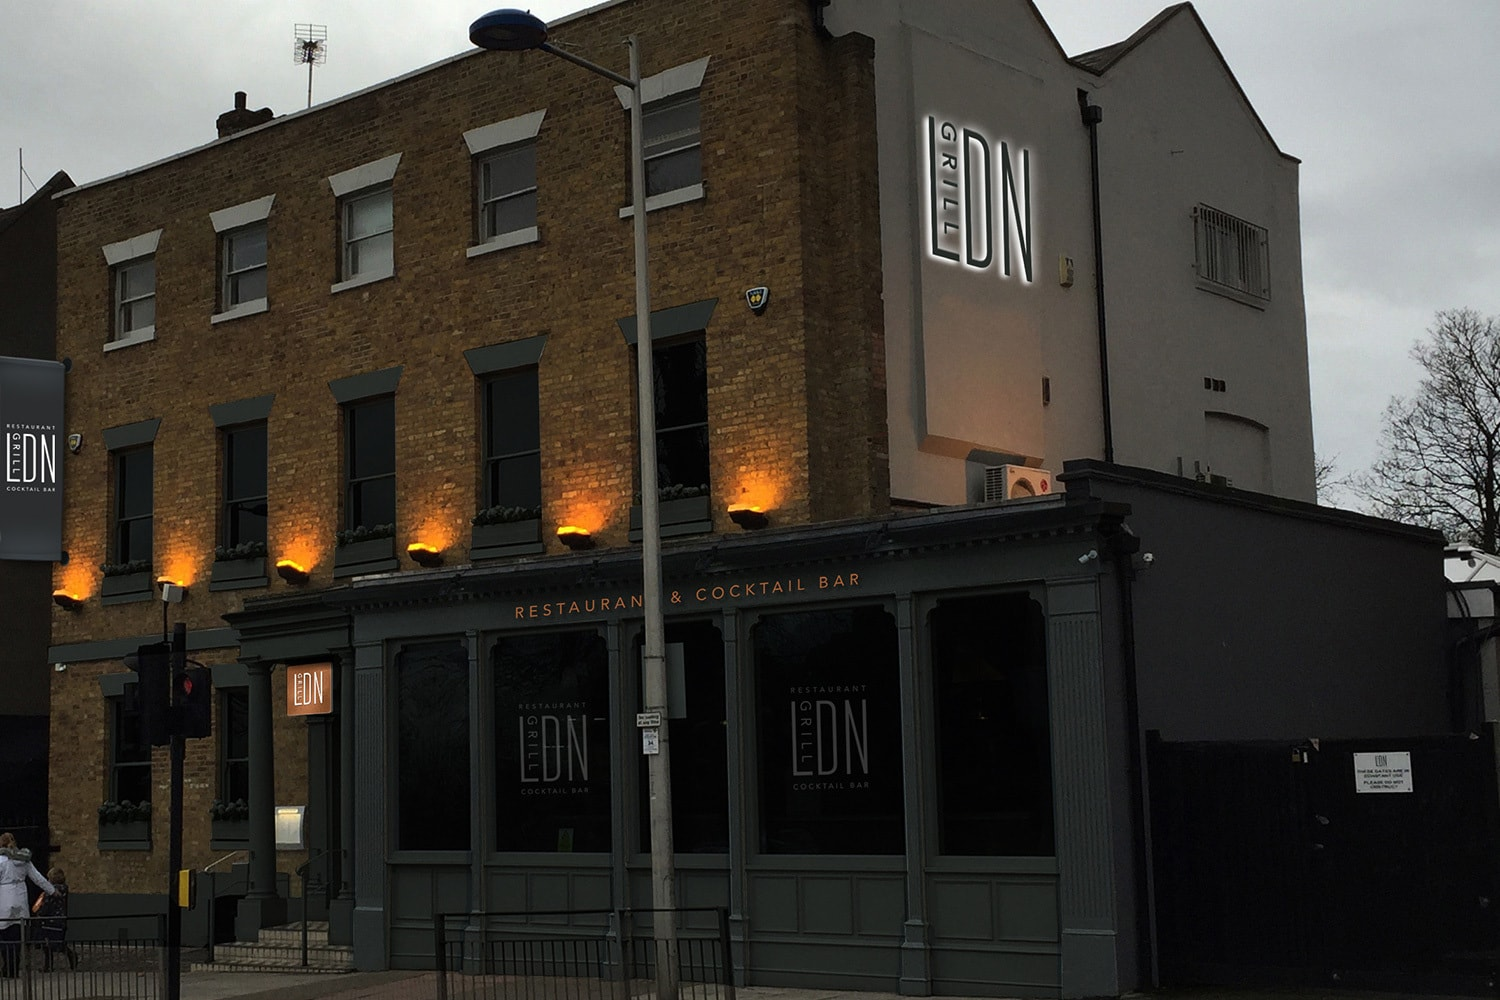 LDN grill exterior branding with an illuminated sign and projecting sign